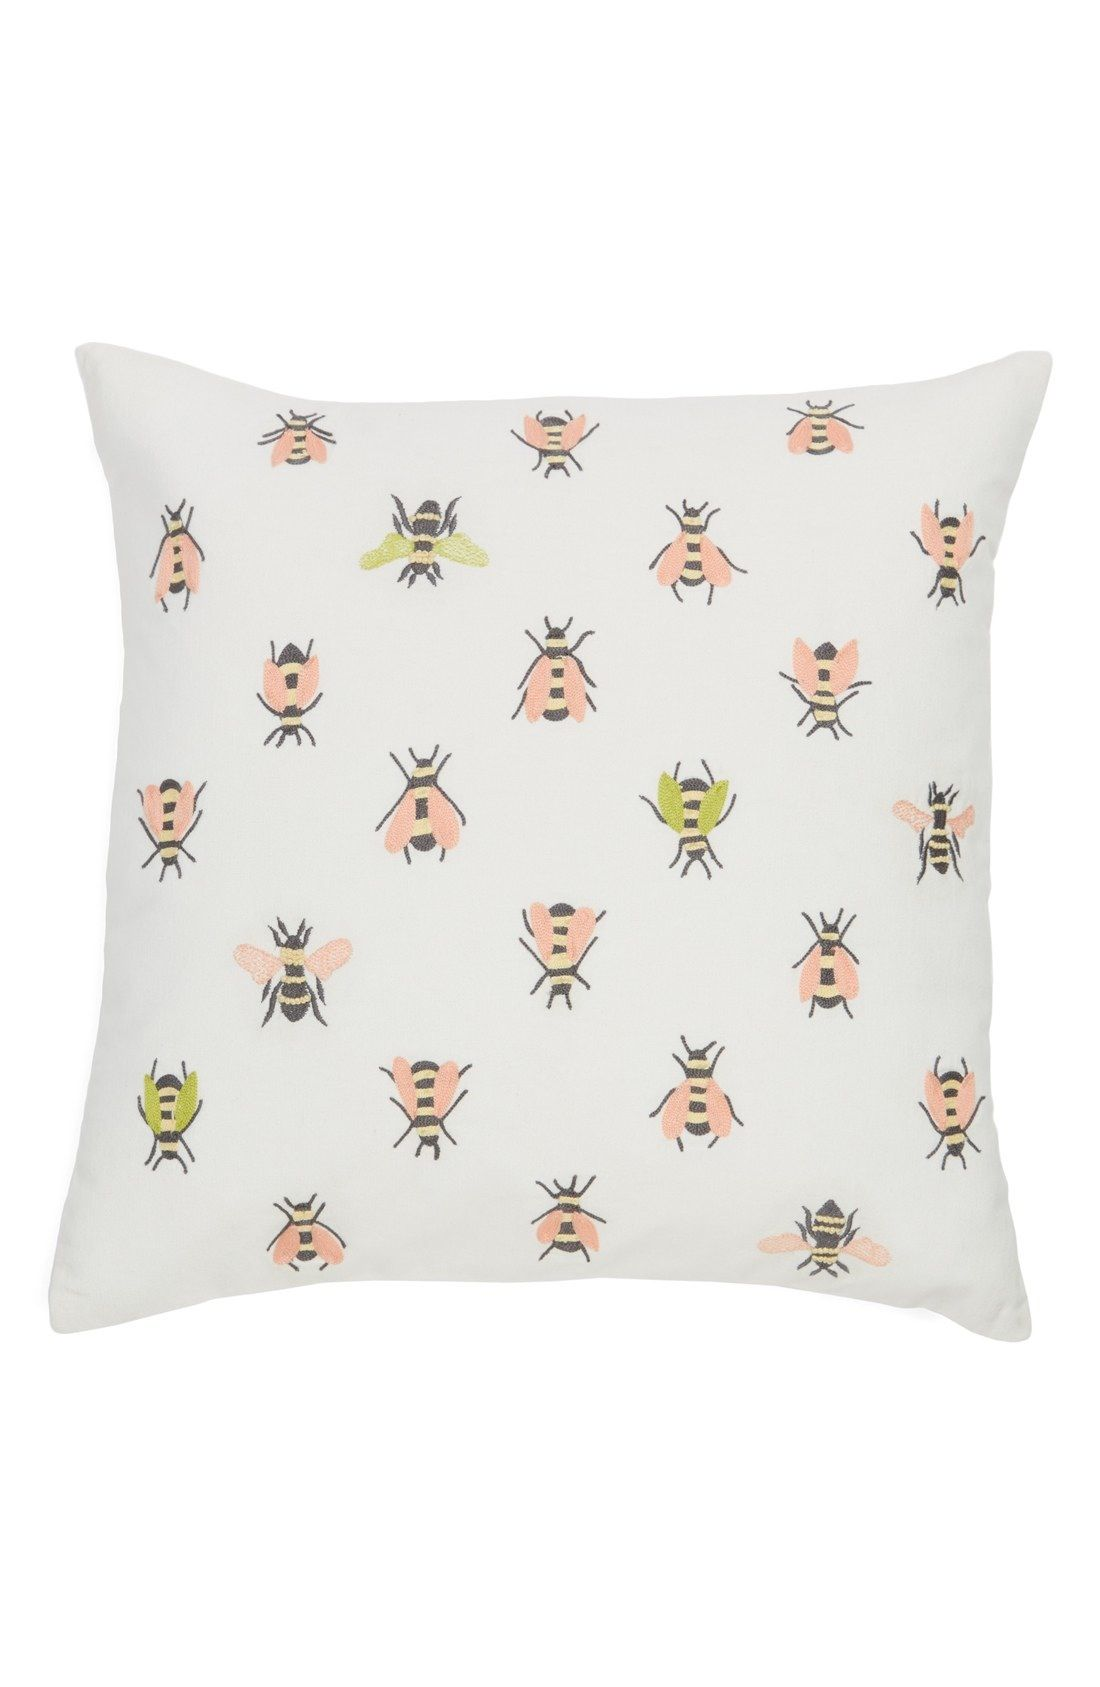 Pink And Green Embroidered Bumblebees Buzz Across This Charming Accent  Pillow Perfect For Cozying Up In Bed.